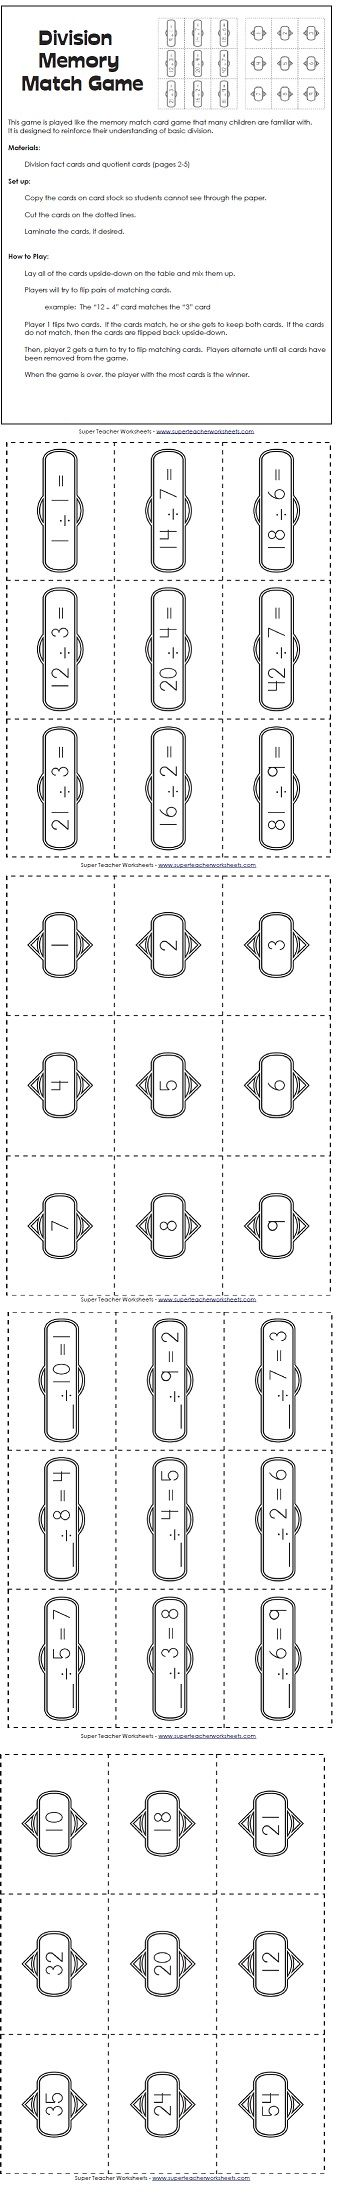 Practice Division Facts With This Fun Memory Match Game